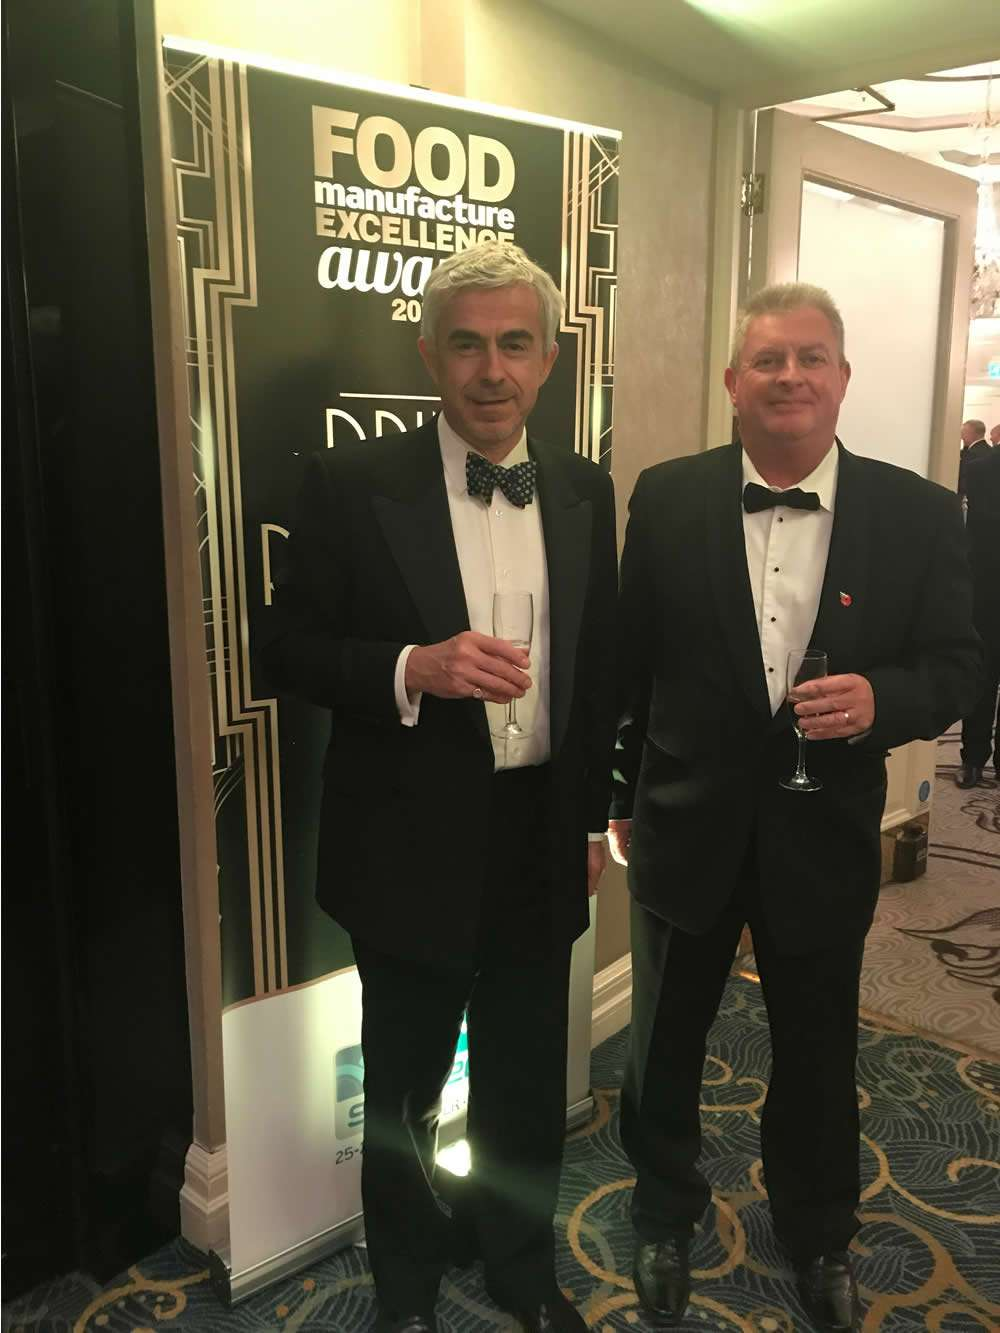 Jeff Williams and Richard Lyncj attending the Food Manufacturing Excellence Awards